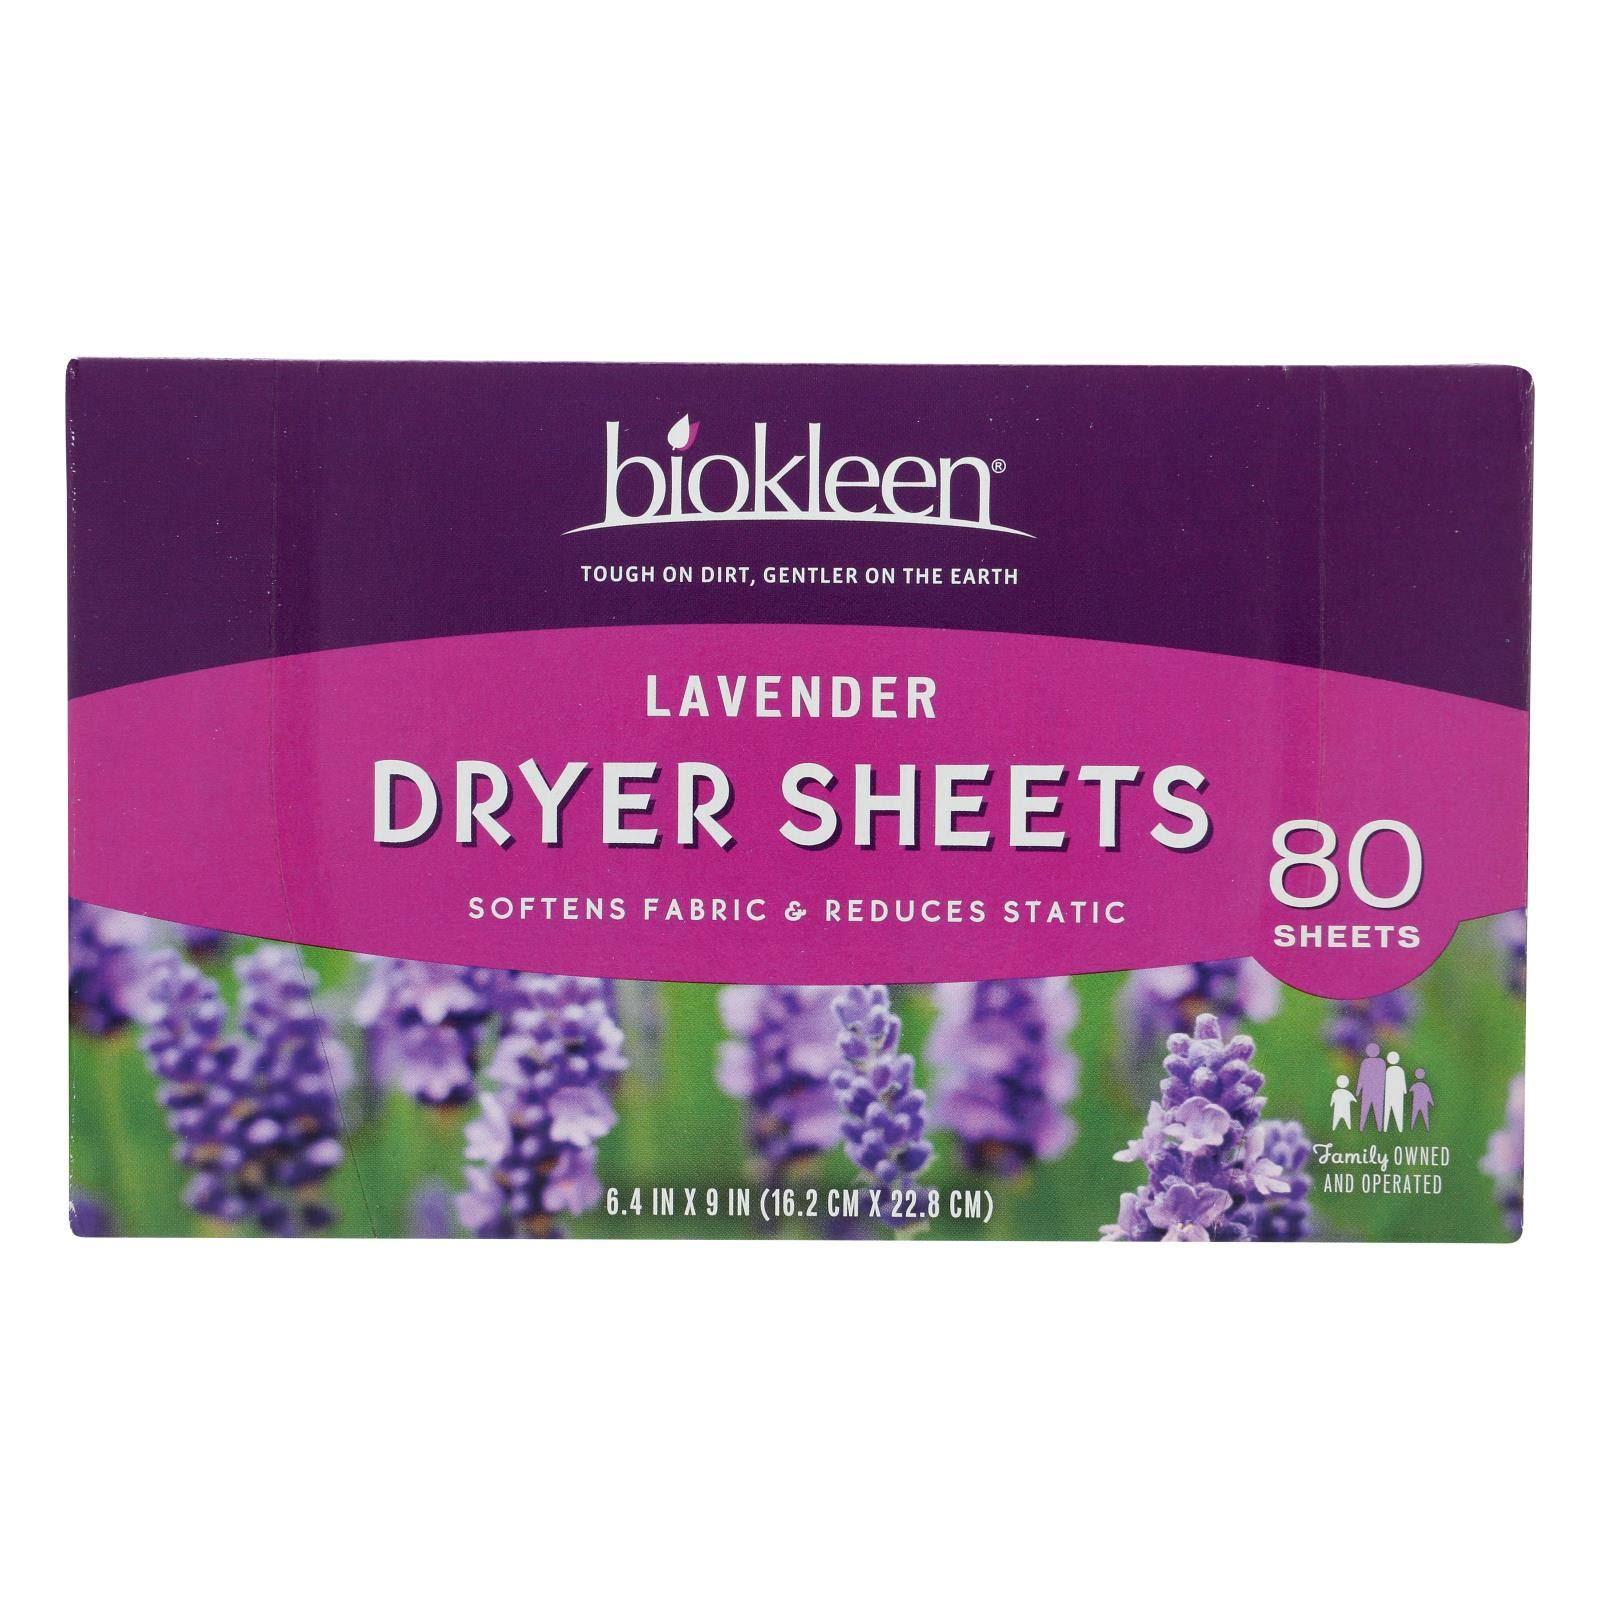 Biokleen Laundry Dryer Sheets Lavender 80 Sheets